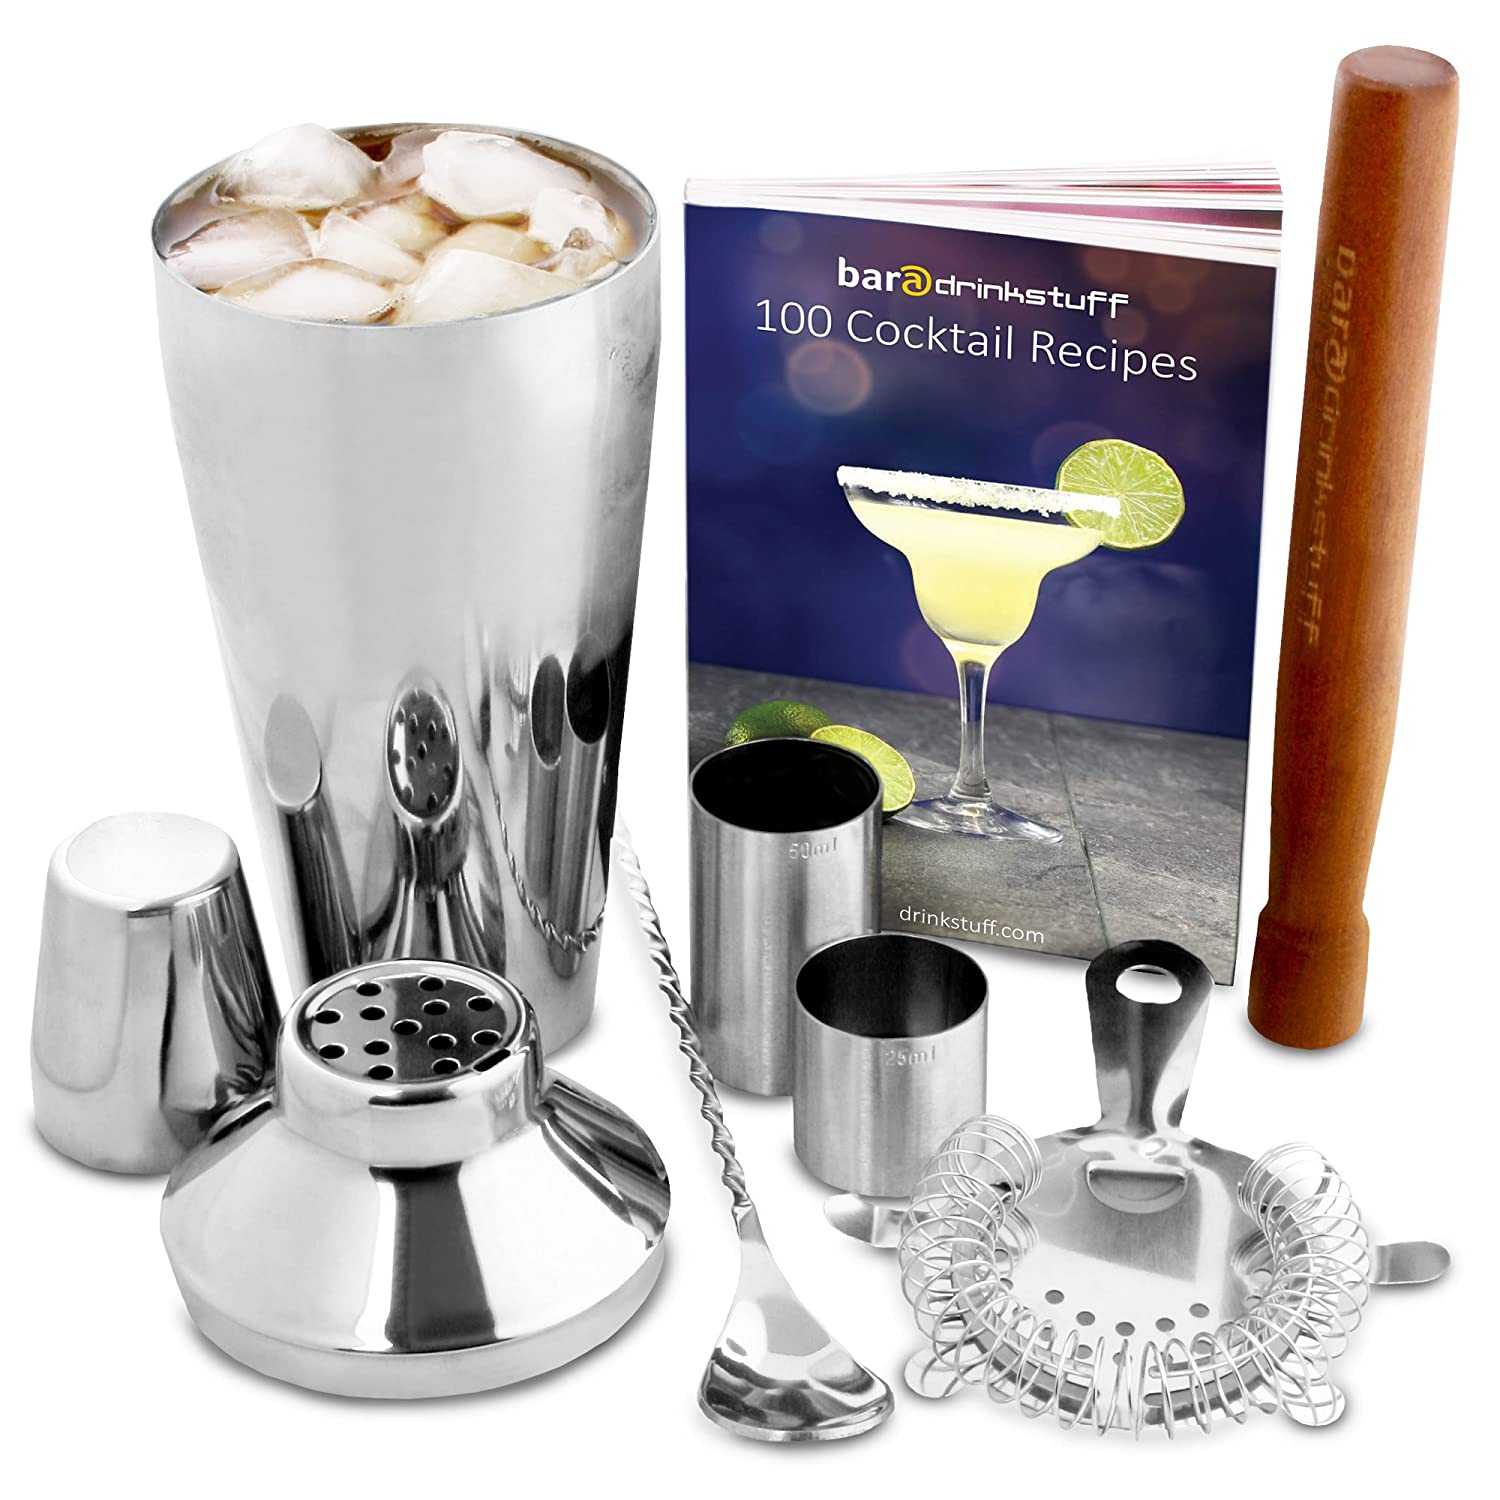 manhattan cocktail set  cocktail shaker set and home cocktail  - manhattan cocktail set  cocktail shaker set and home cocktail making kitwith recipe book ml shaker strainer muddler twisted mixing spoon